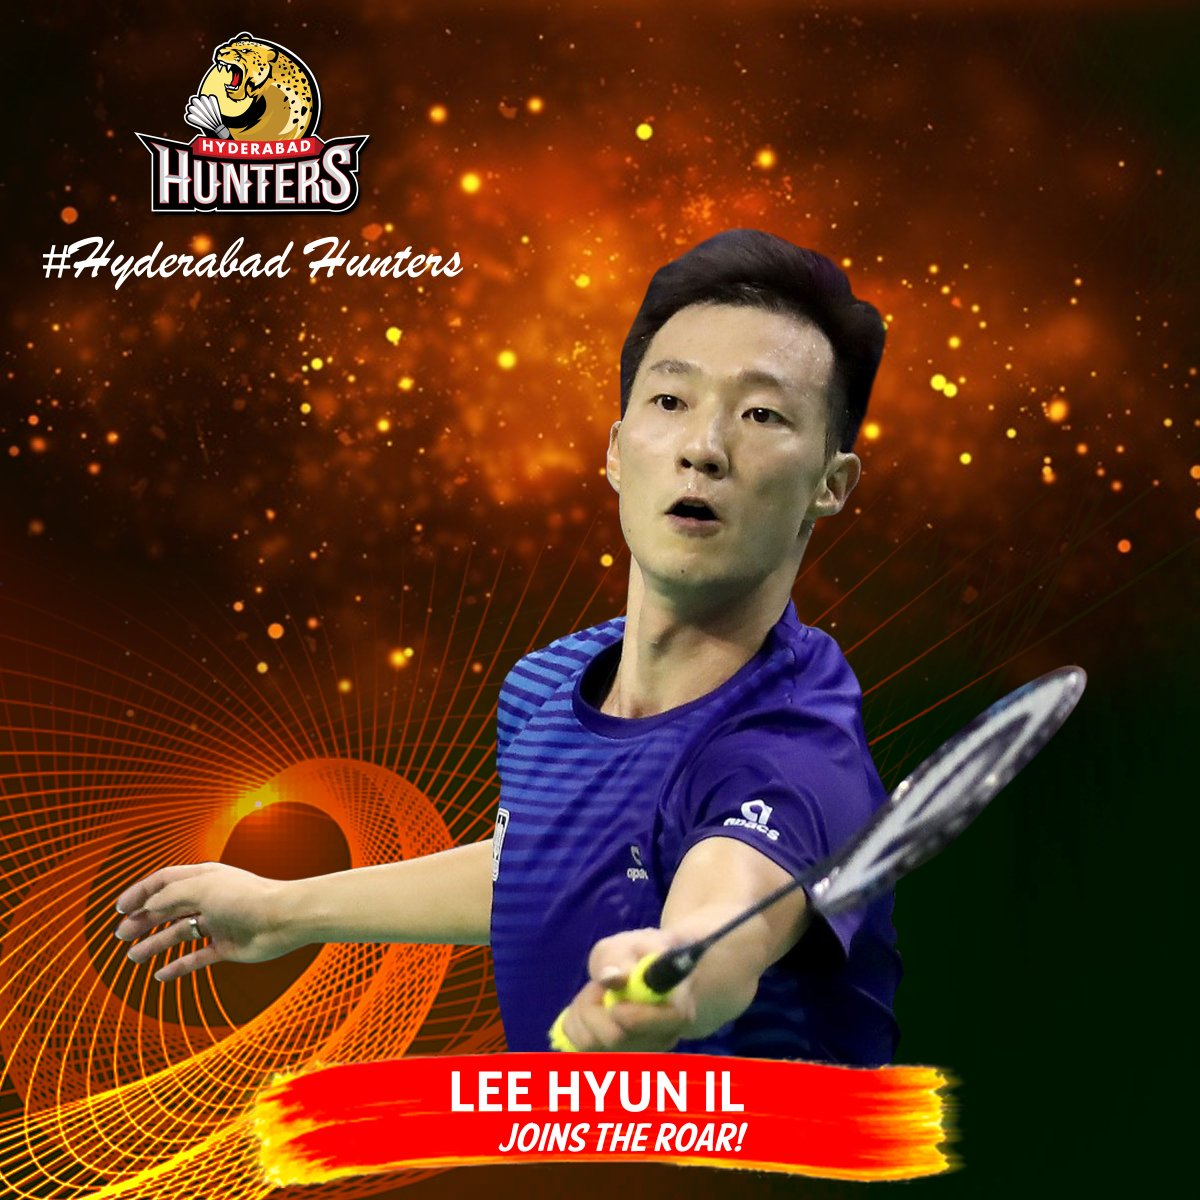 "HyderabadHunters on Twitter ""Lee Hyun Il joins HyderabadHunters"